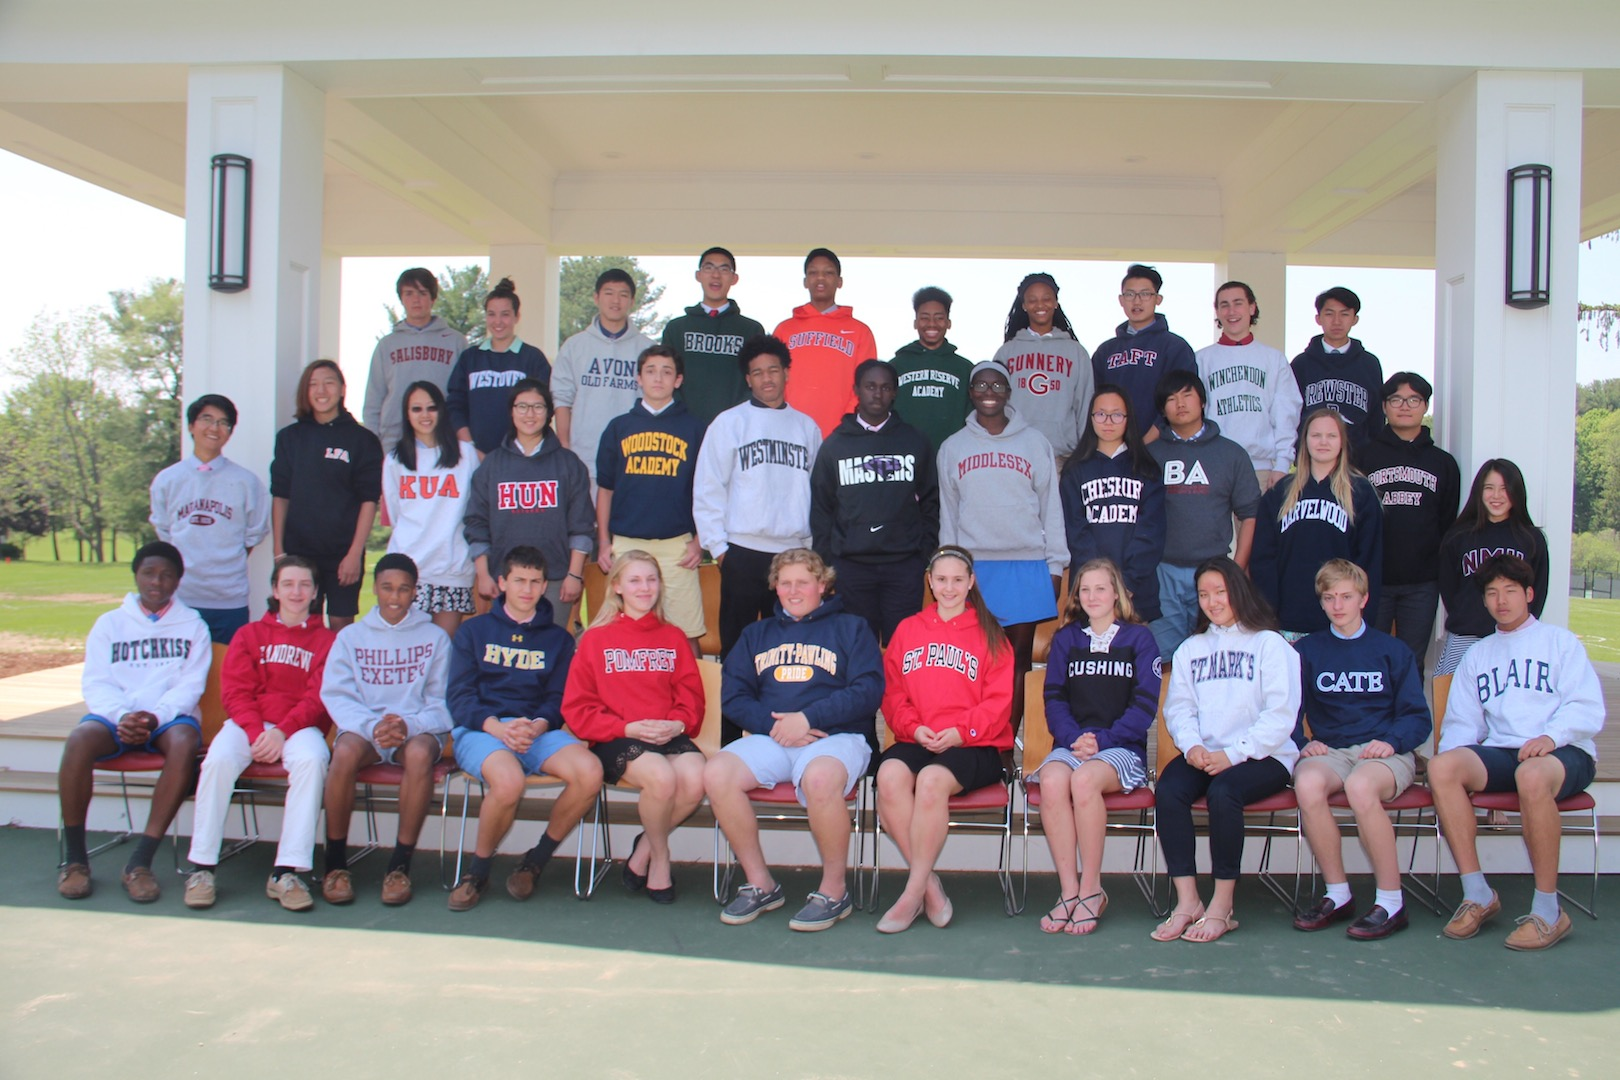 Graduates of Rectory's Class of 2016 wearing the sweatshirts for their new secondary schools.